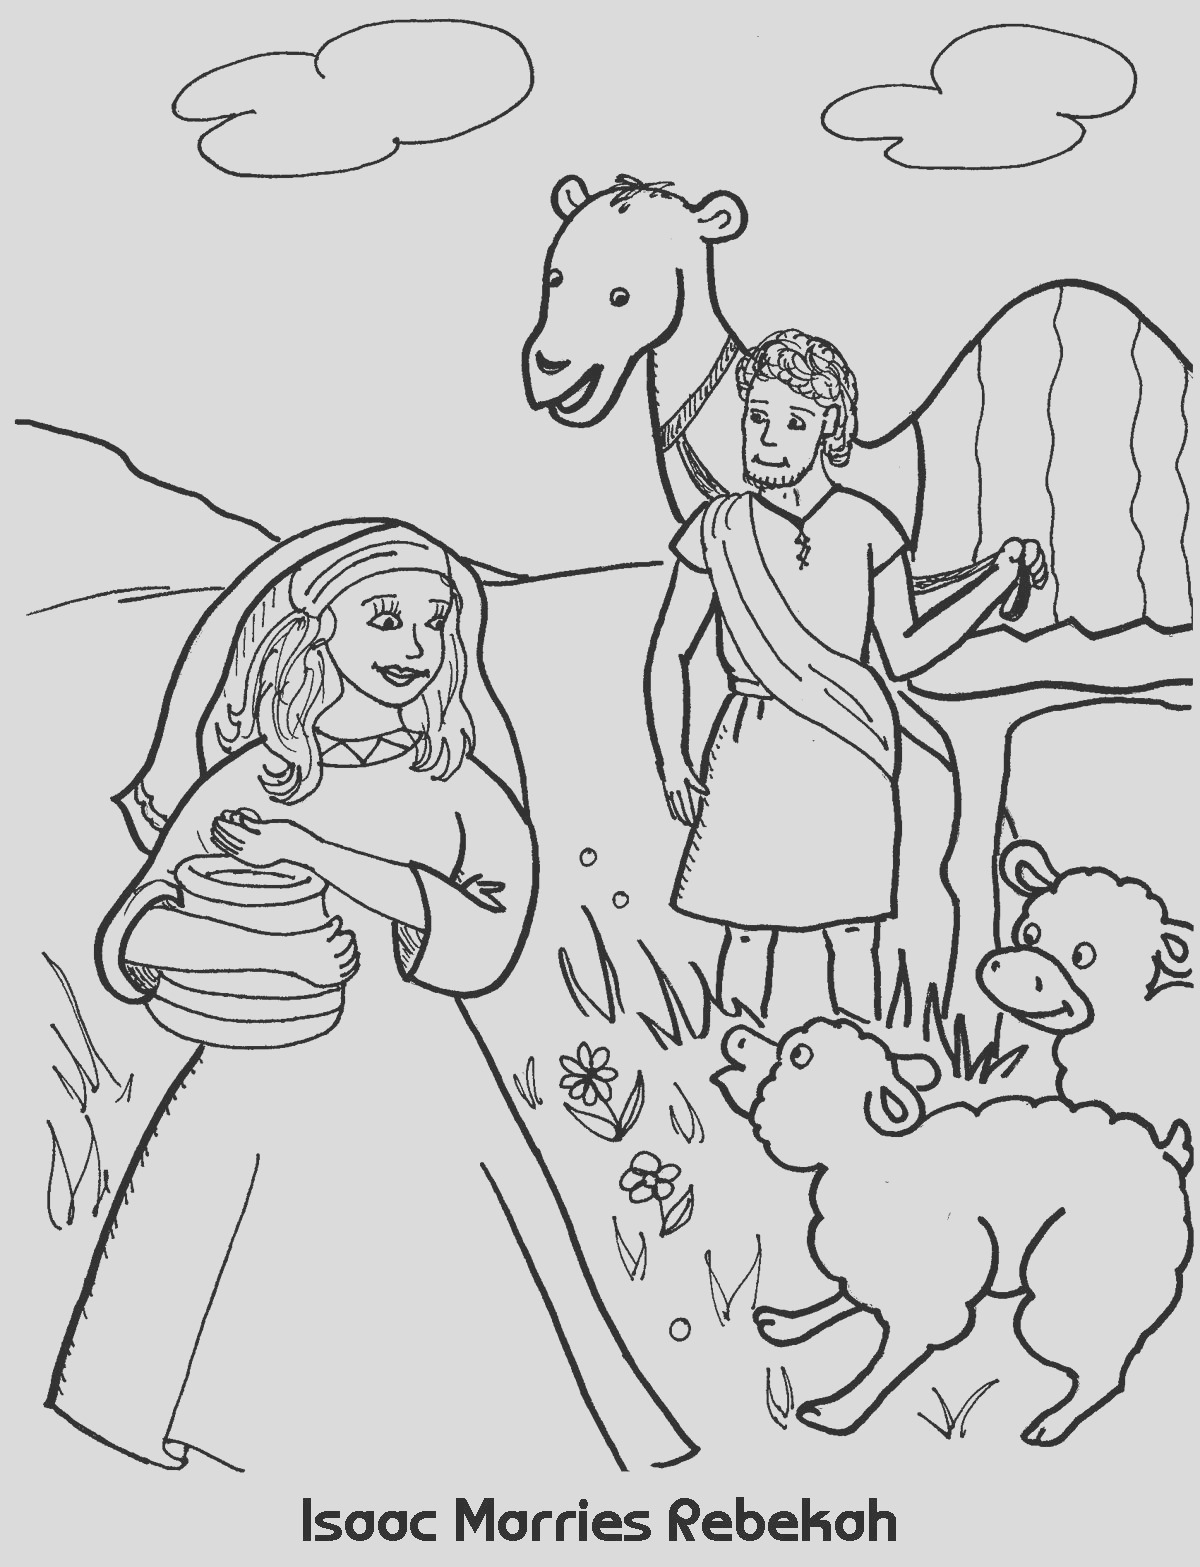 isaac marries rebekah coloring sheet